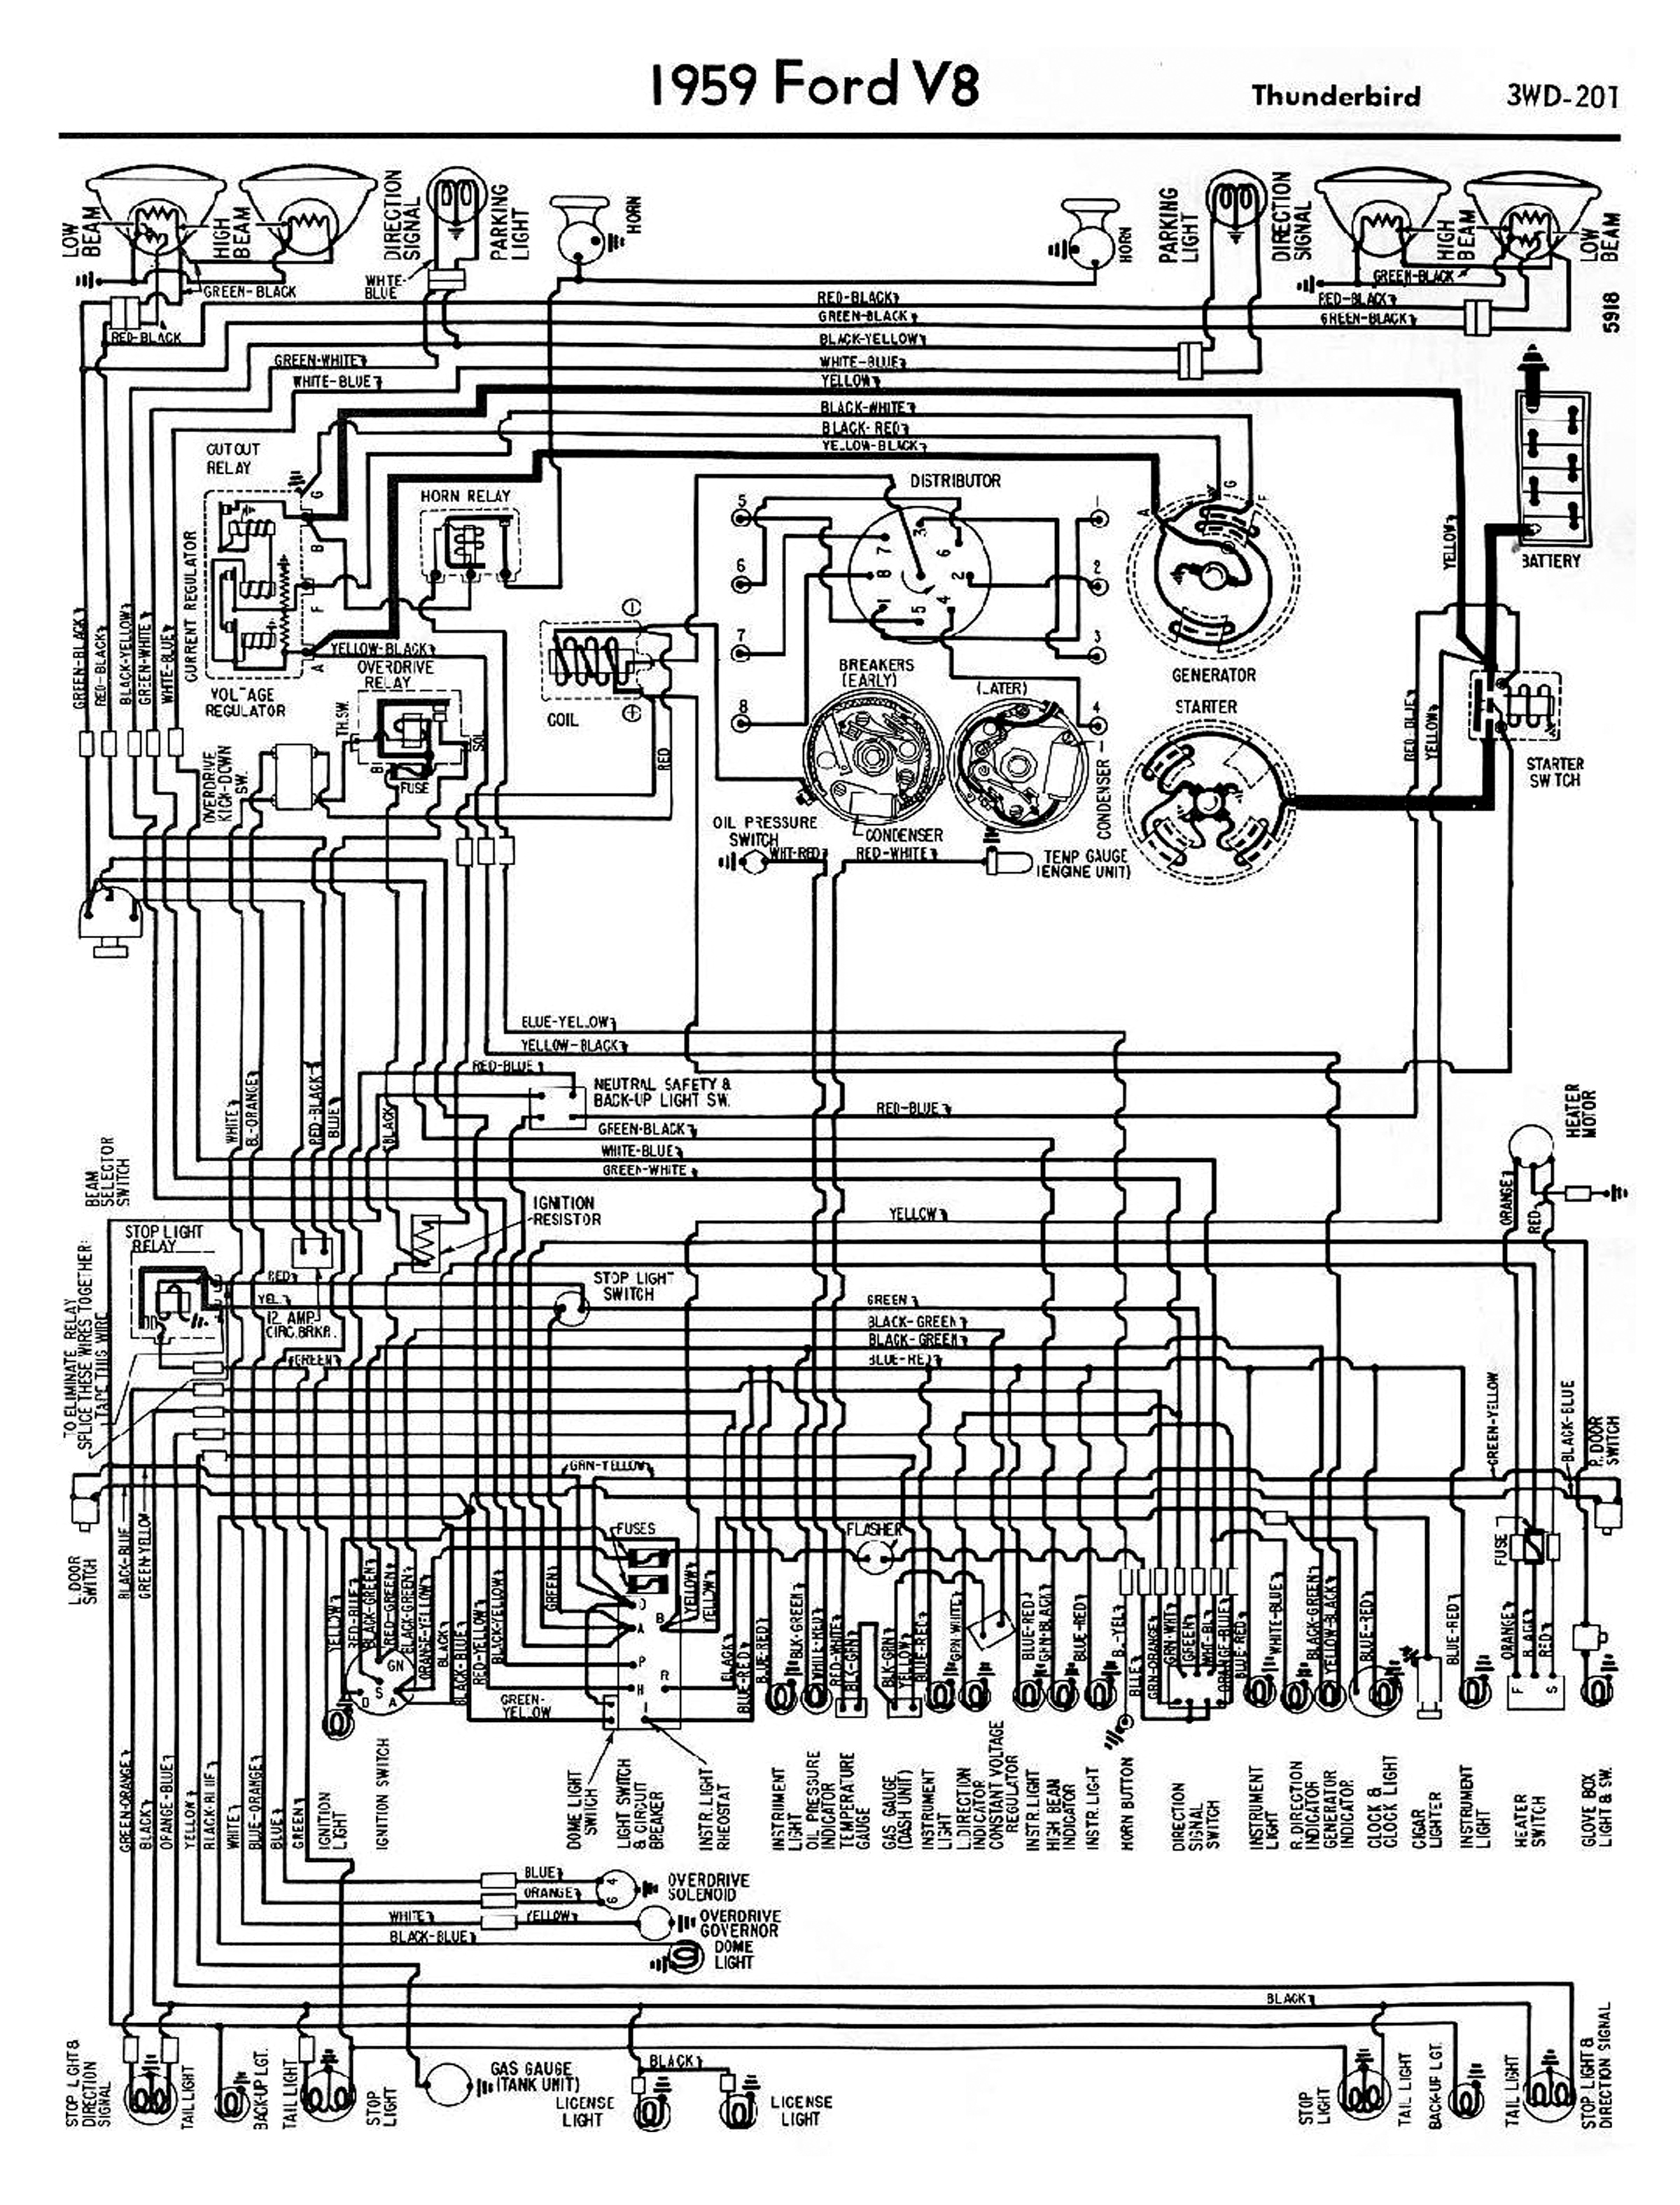 ford wiring diagram yamaha g8 gas golf cart for 1968 f100 get free image about